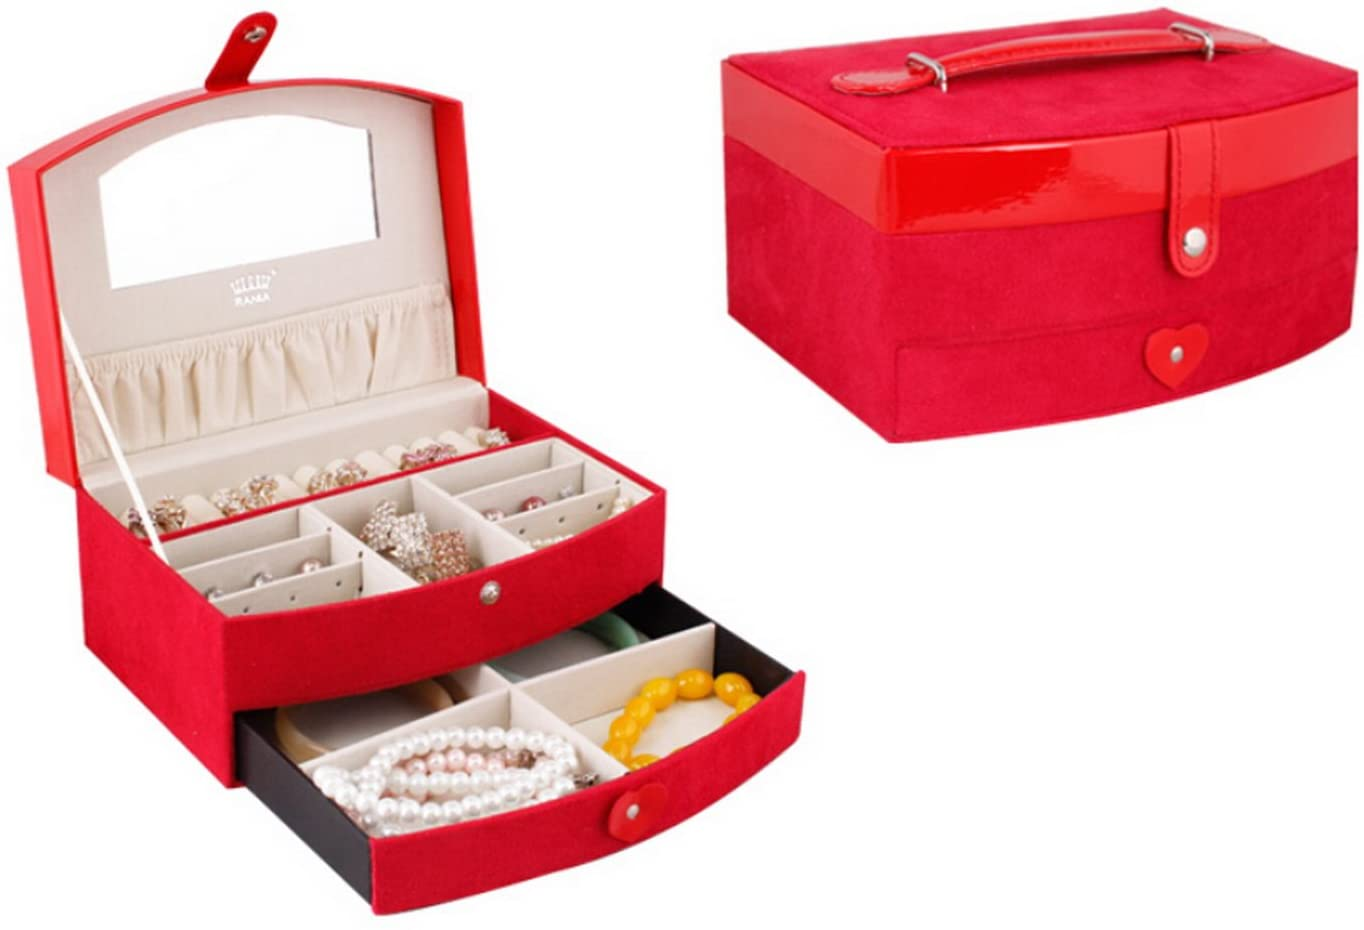 GIFT4U Elegant Two-Layer Lint+Leather Jewelry Box Organizer Case Storage with Lock Drawer Mirror Red